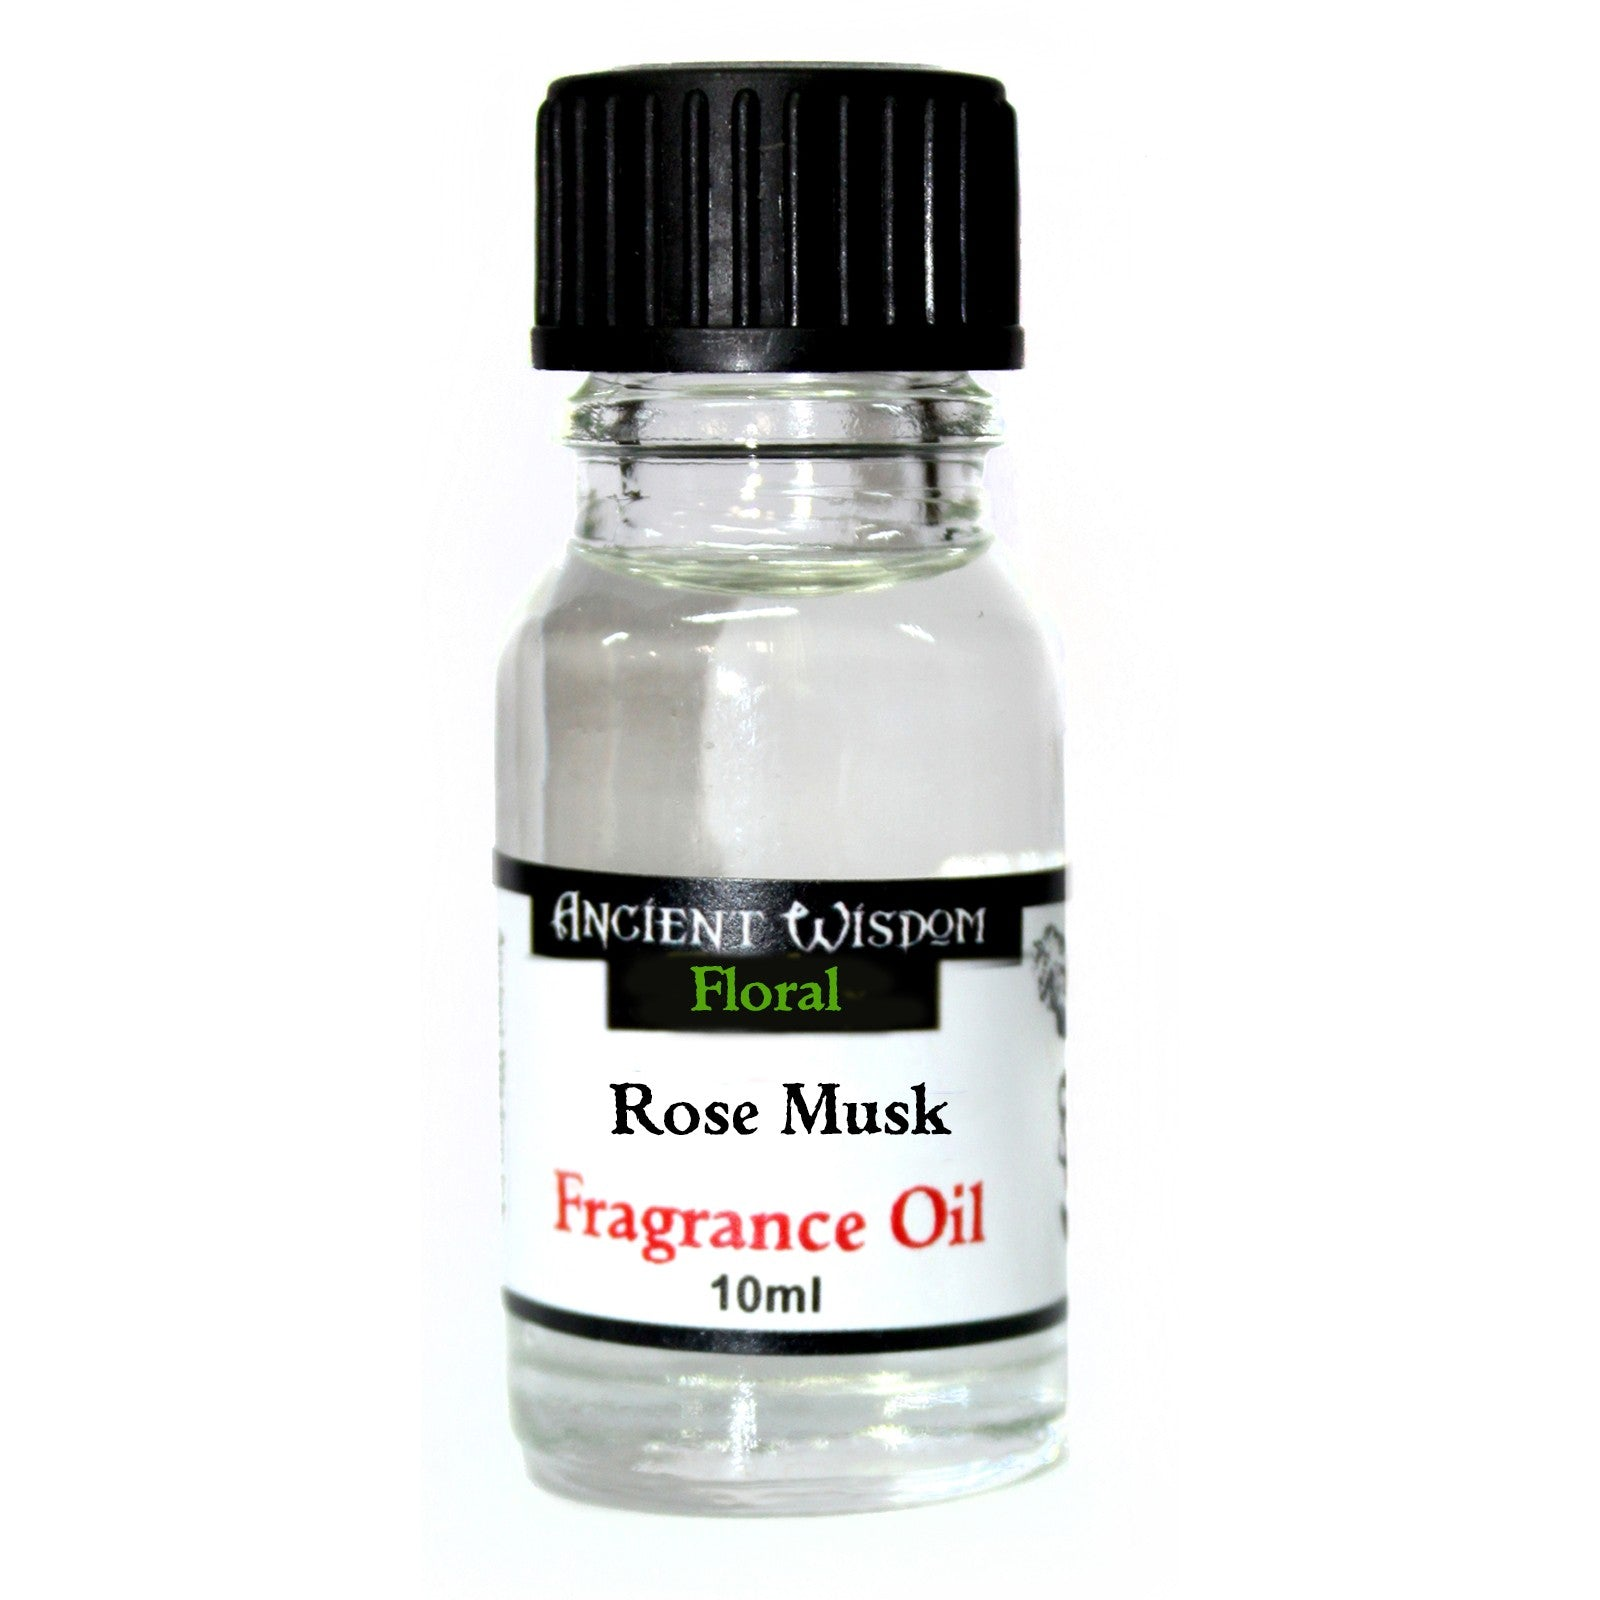 Rose Musk Fragrance Oil